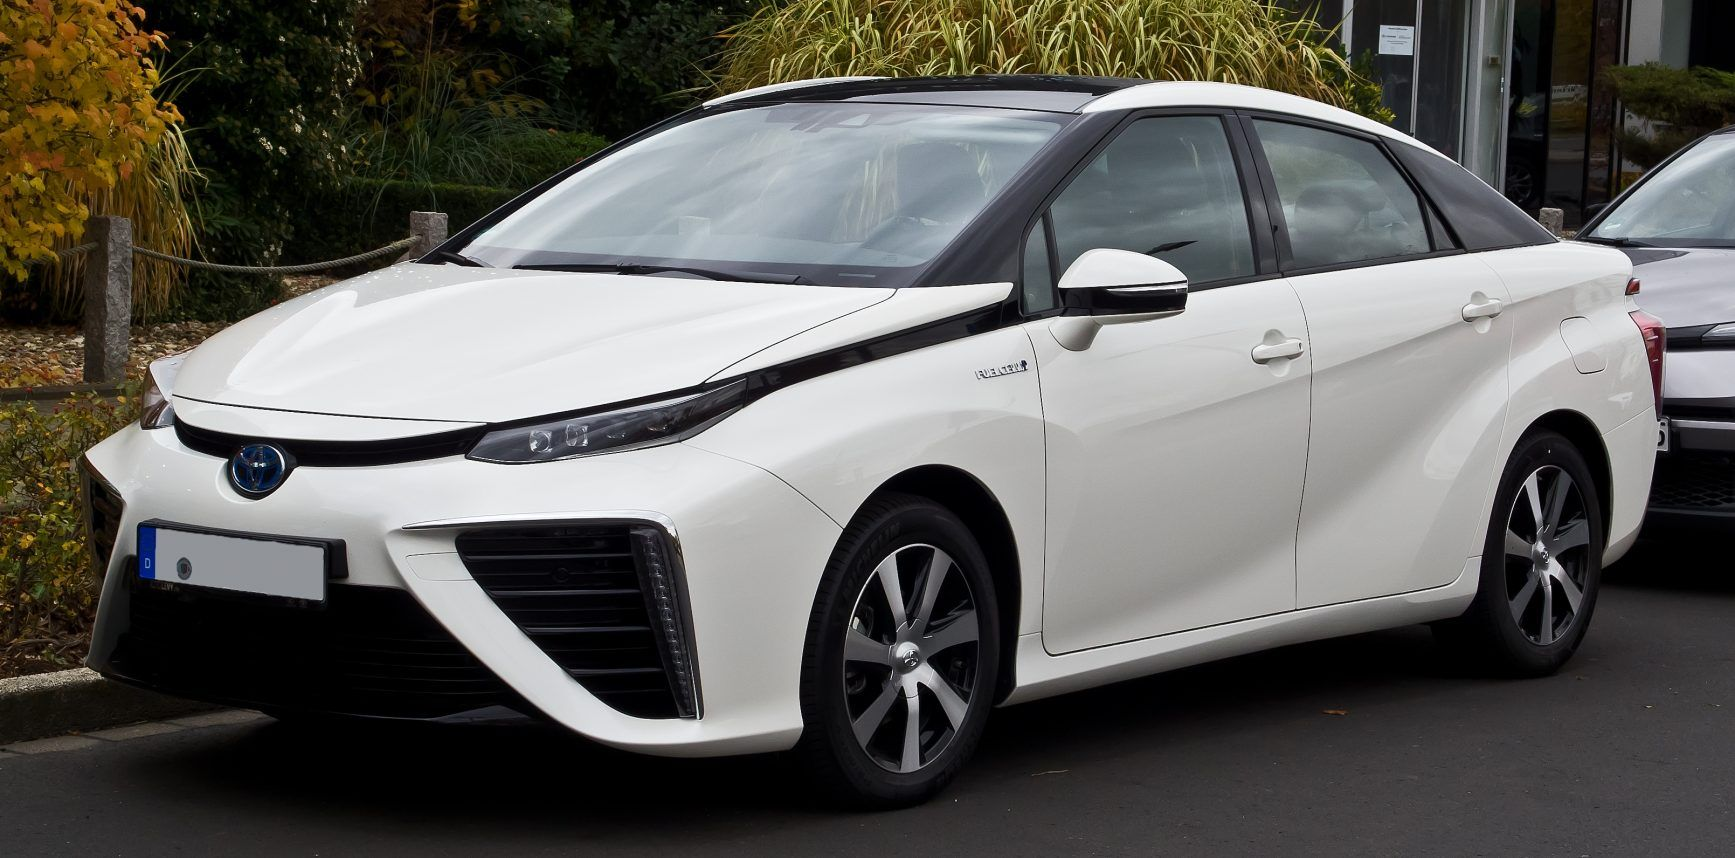 The Toyota Mirai is a fuelcell vehicle which initially